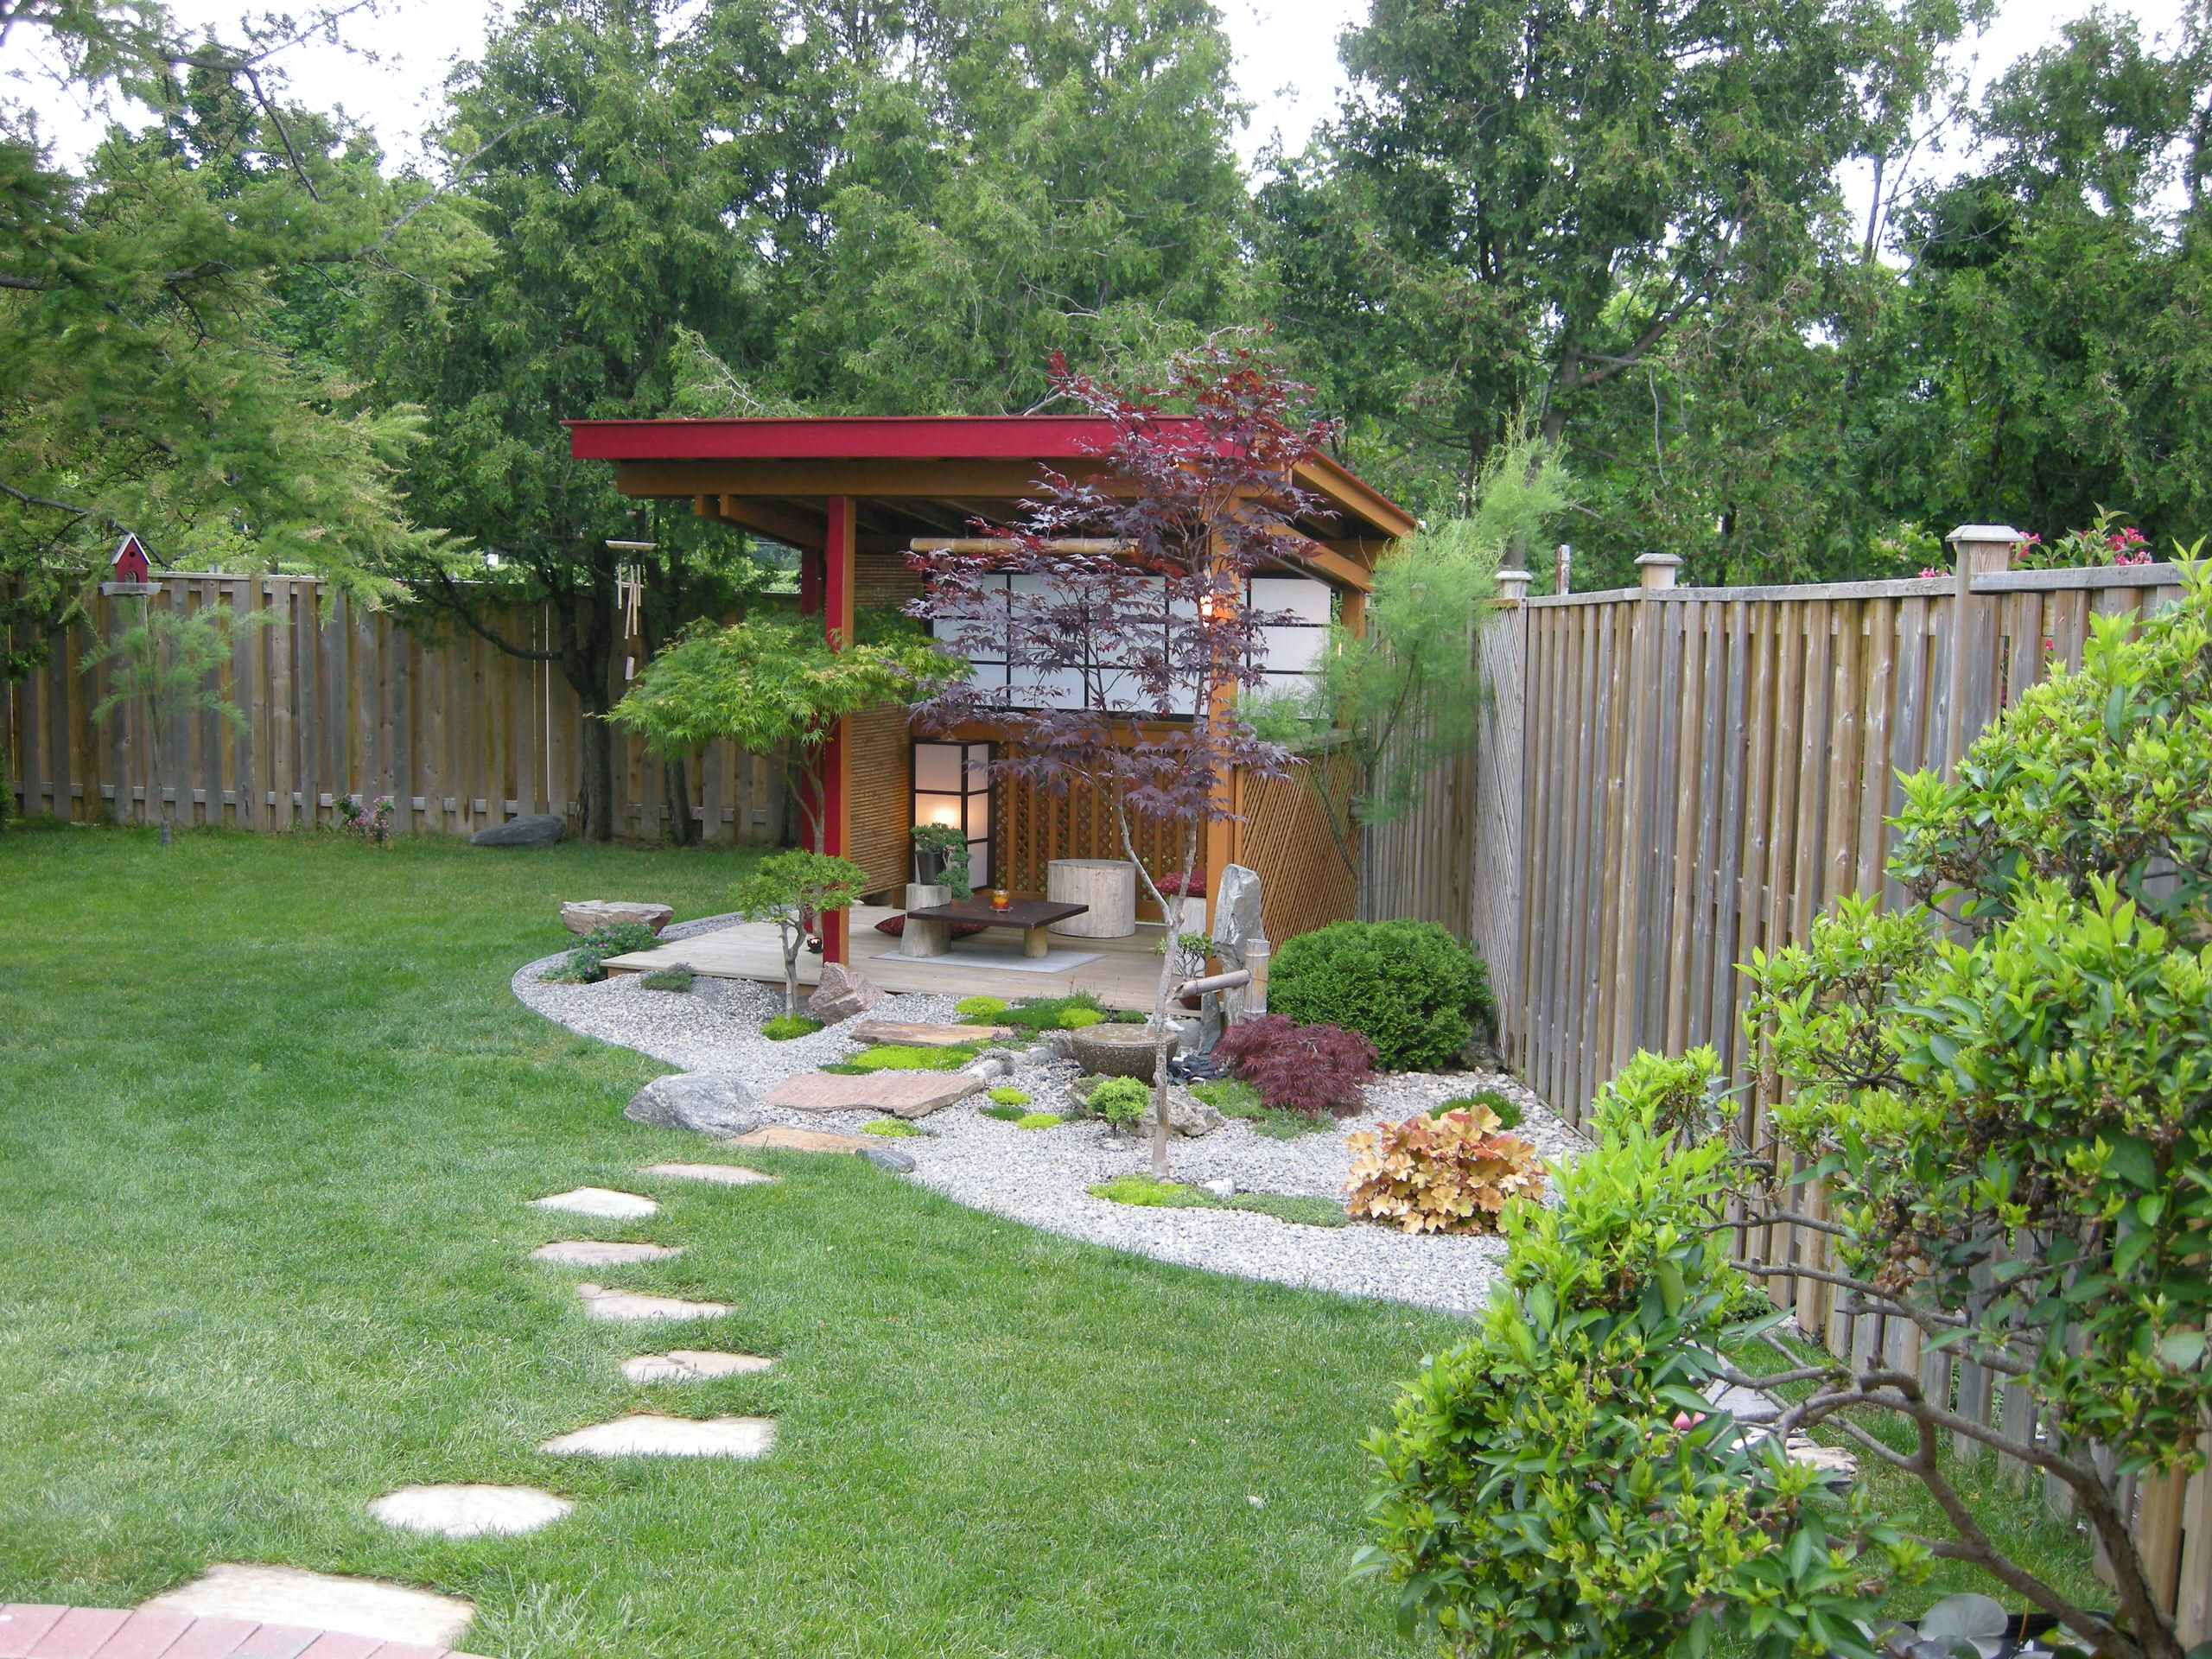 How To Make A Zen Garden In Your Backyard how to make a zen garden design in your backyard: zen garden design